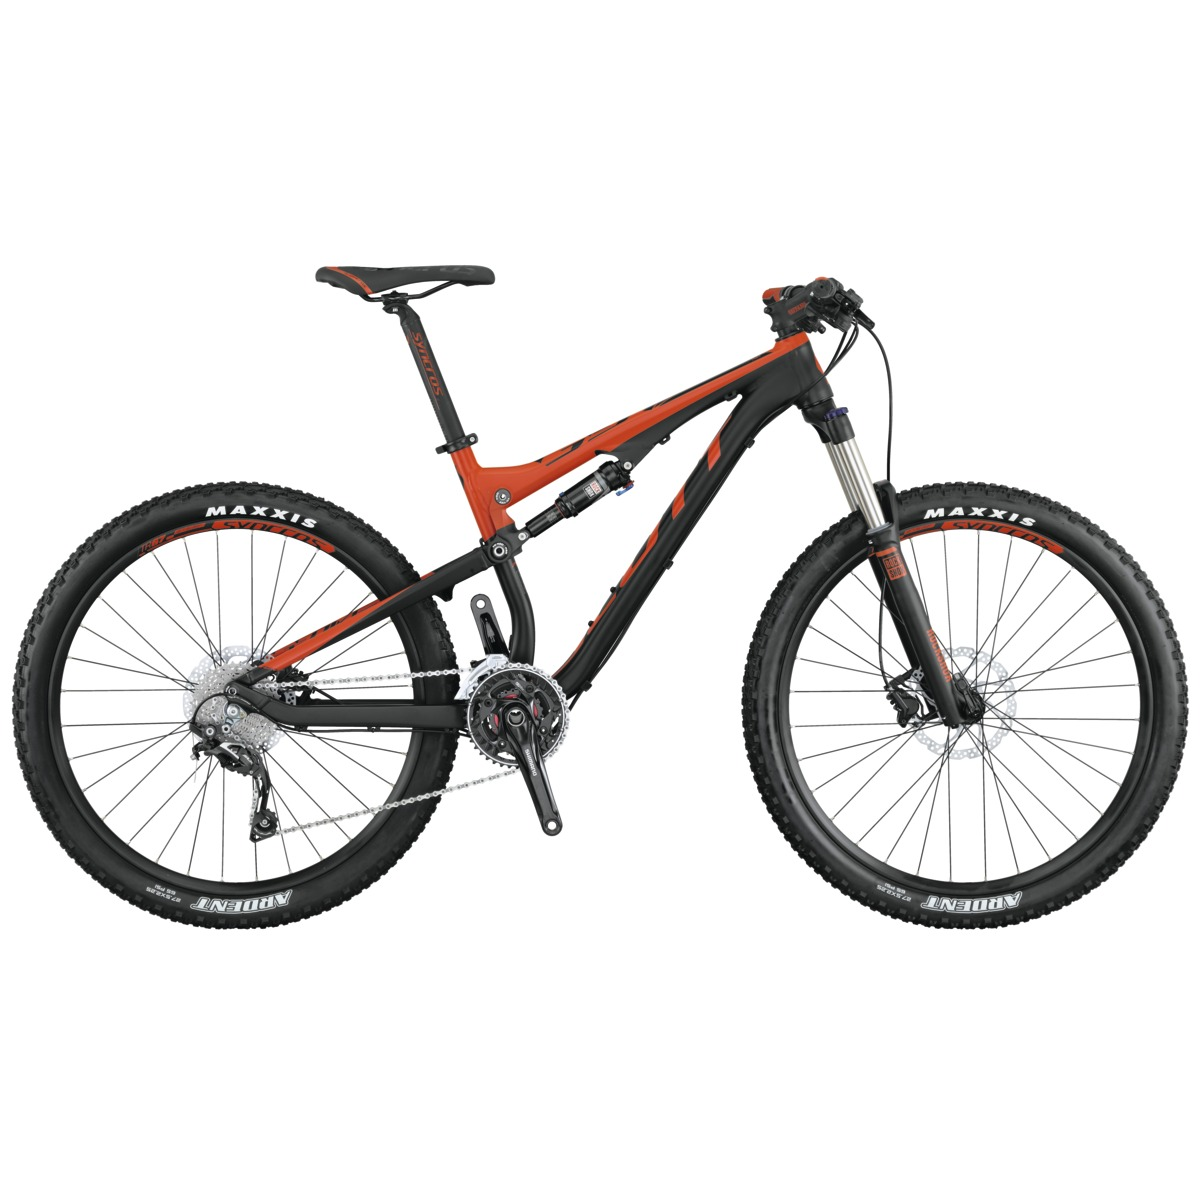 Join during the Spring Membership Drive & you'll be entered to win a sweet Scott Genius 750 valued at $2499